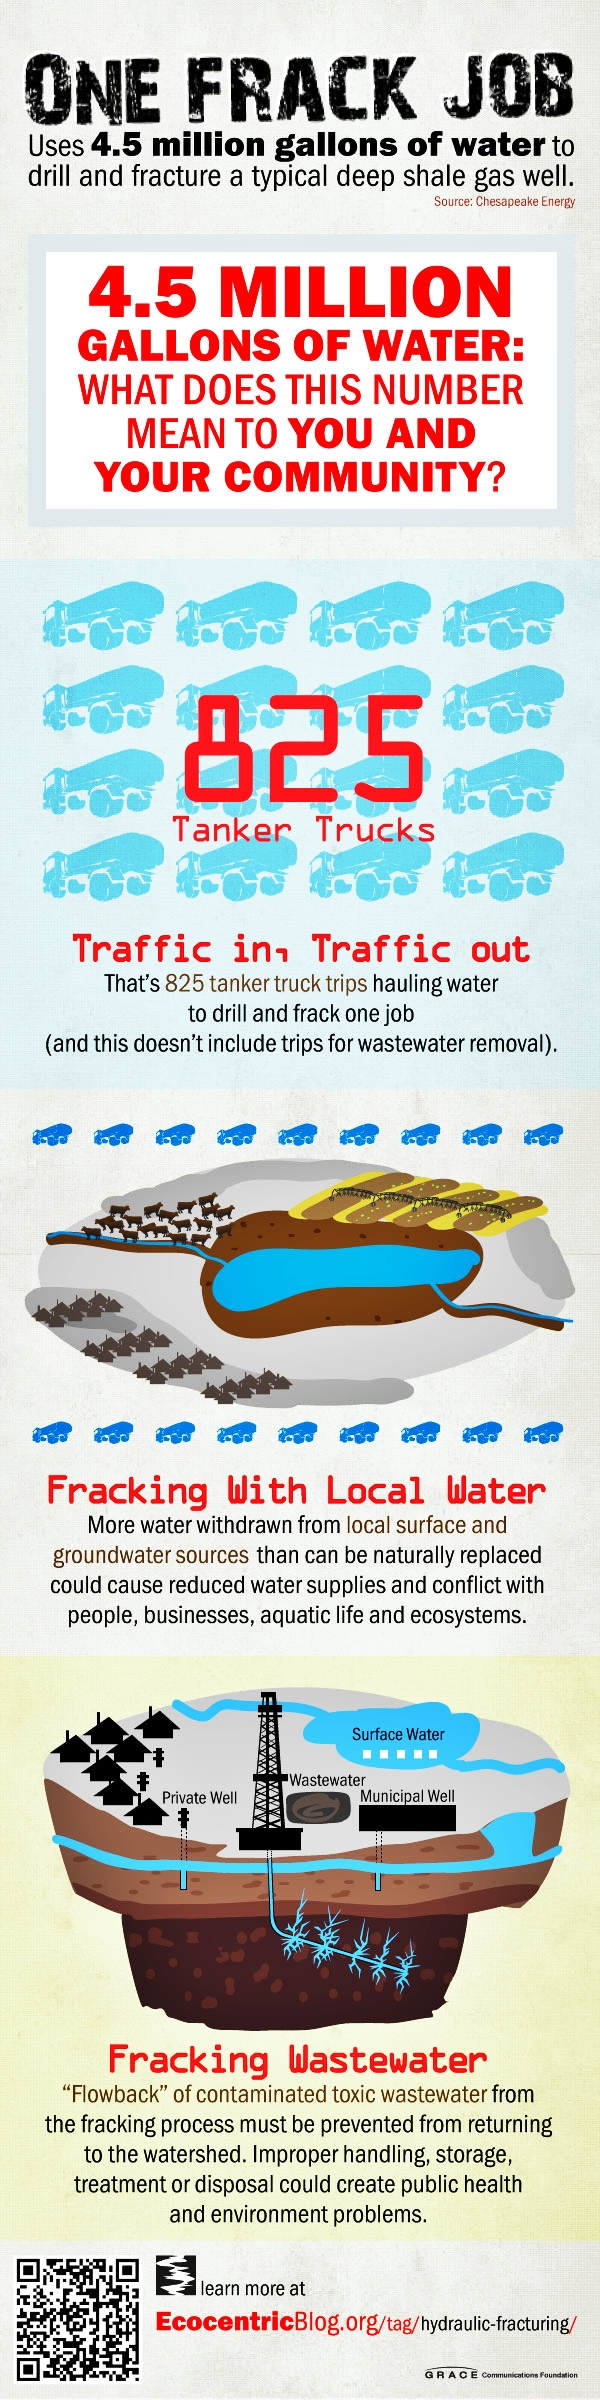 One frack job water usage